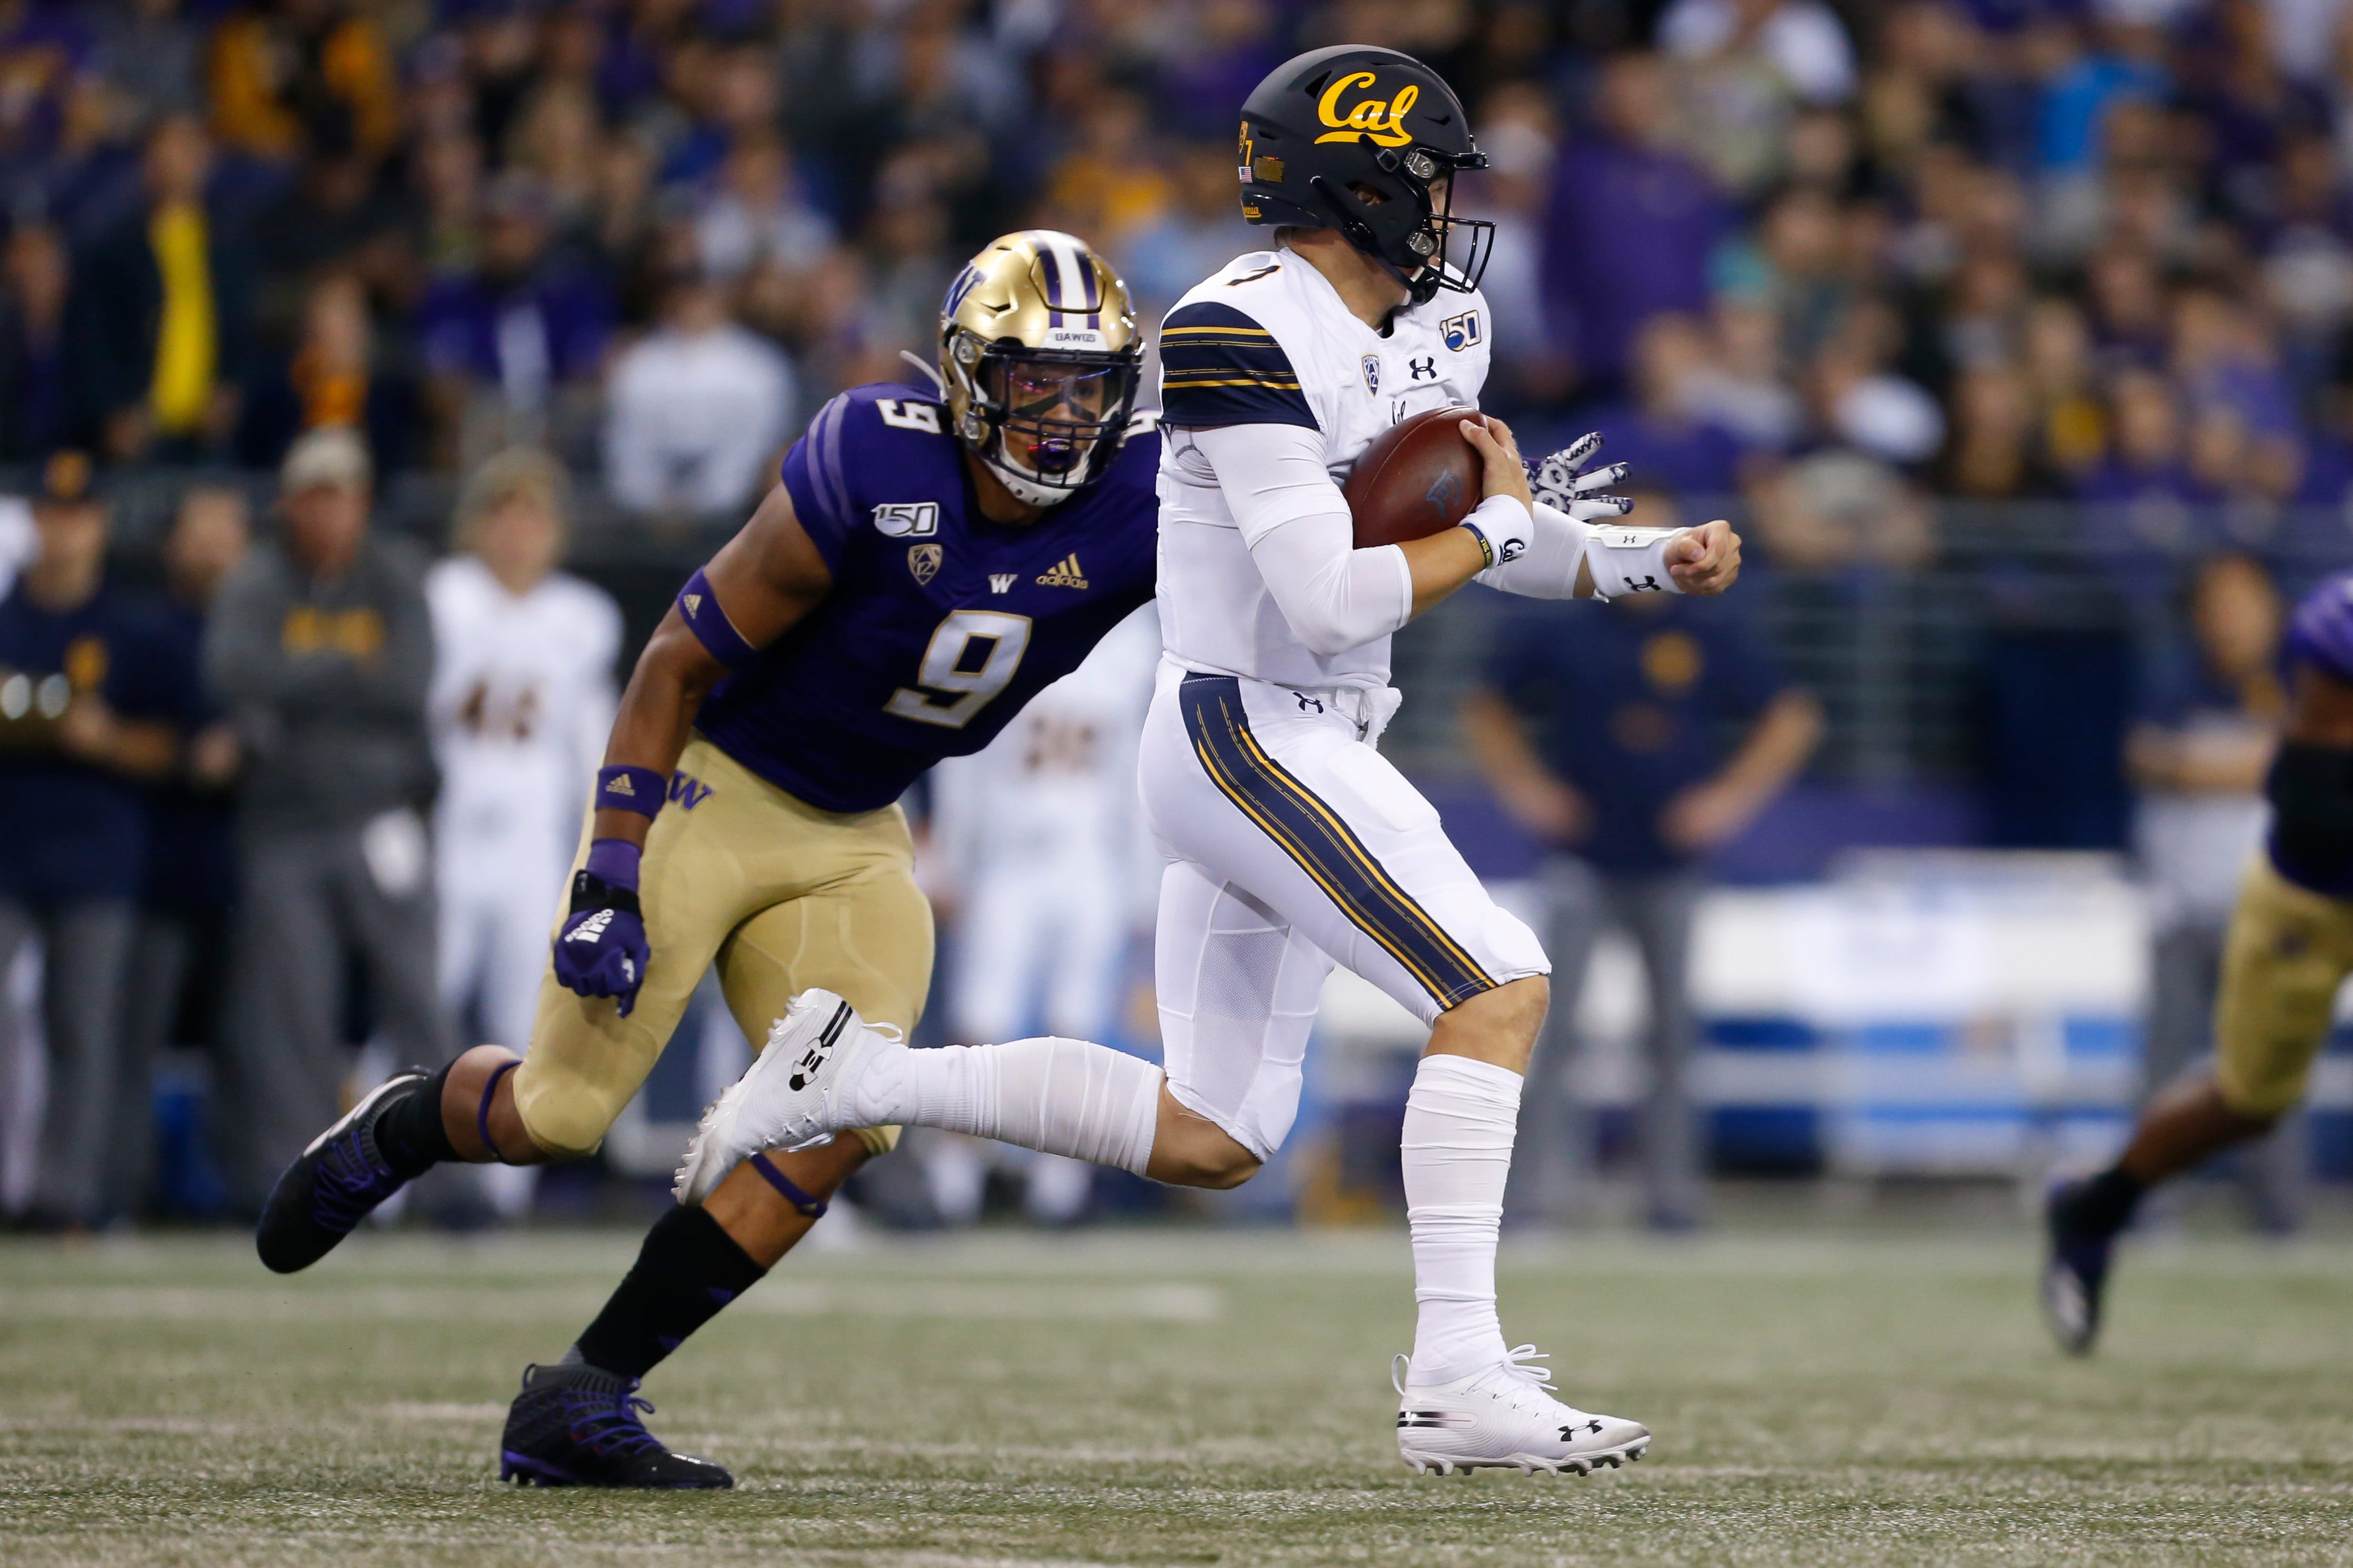 California game against Washington called off due to COVID-19 issues